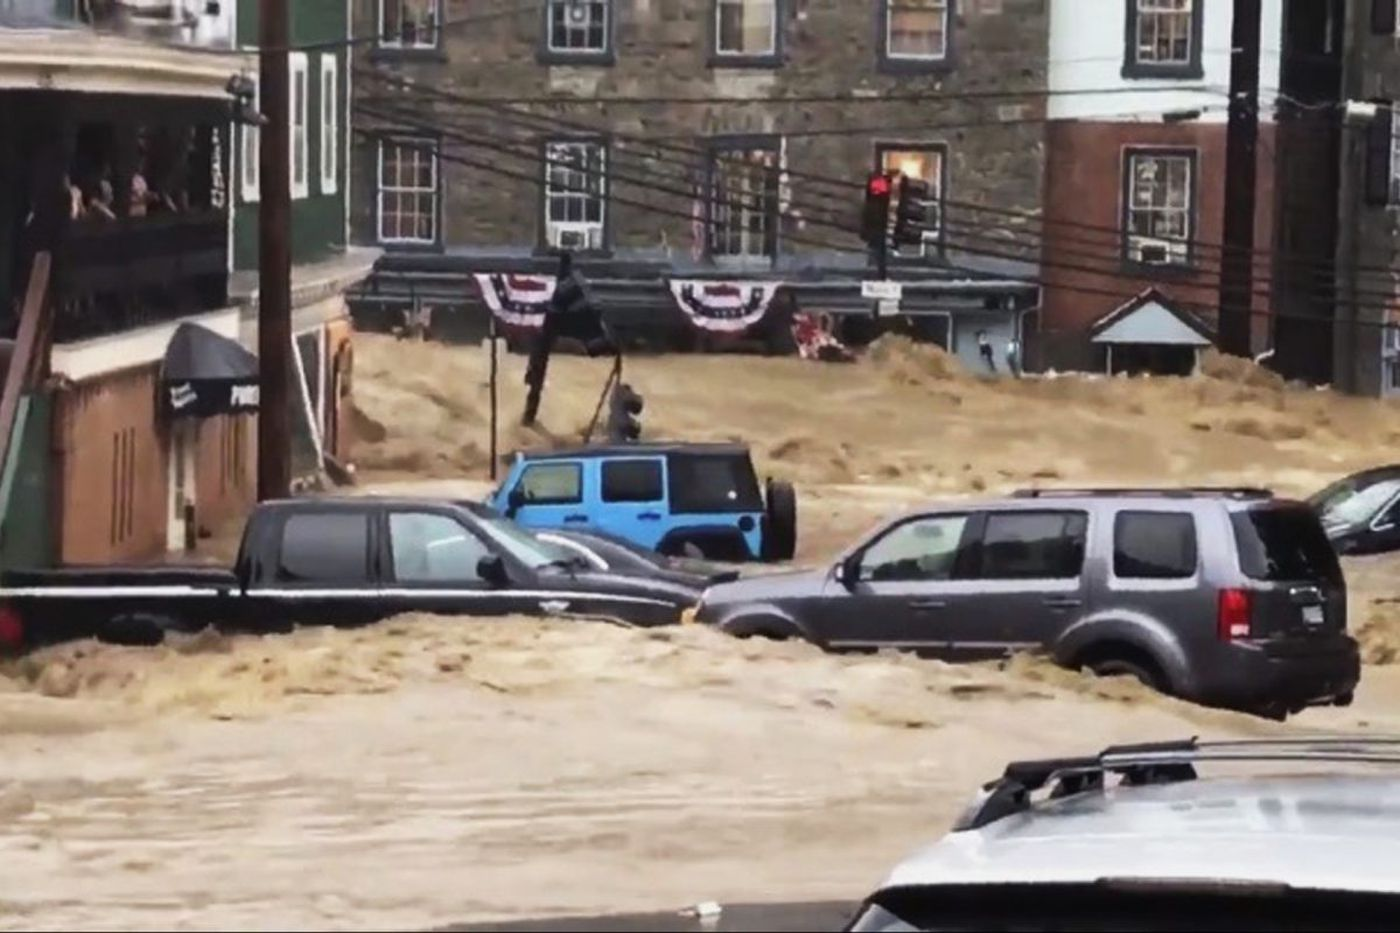 'Did climate change kill … people in Ellicott City?' | Will Bunch